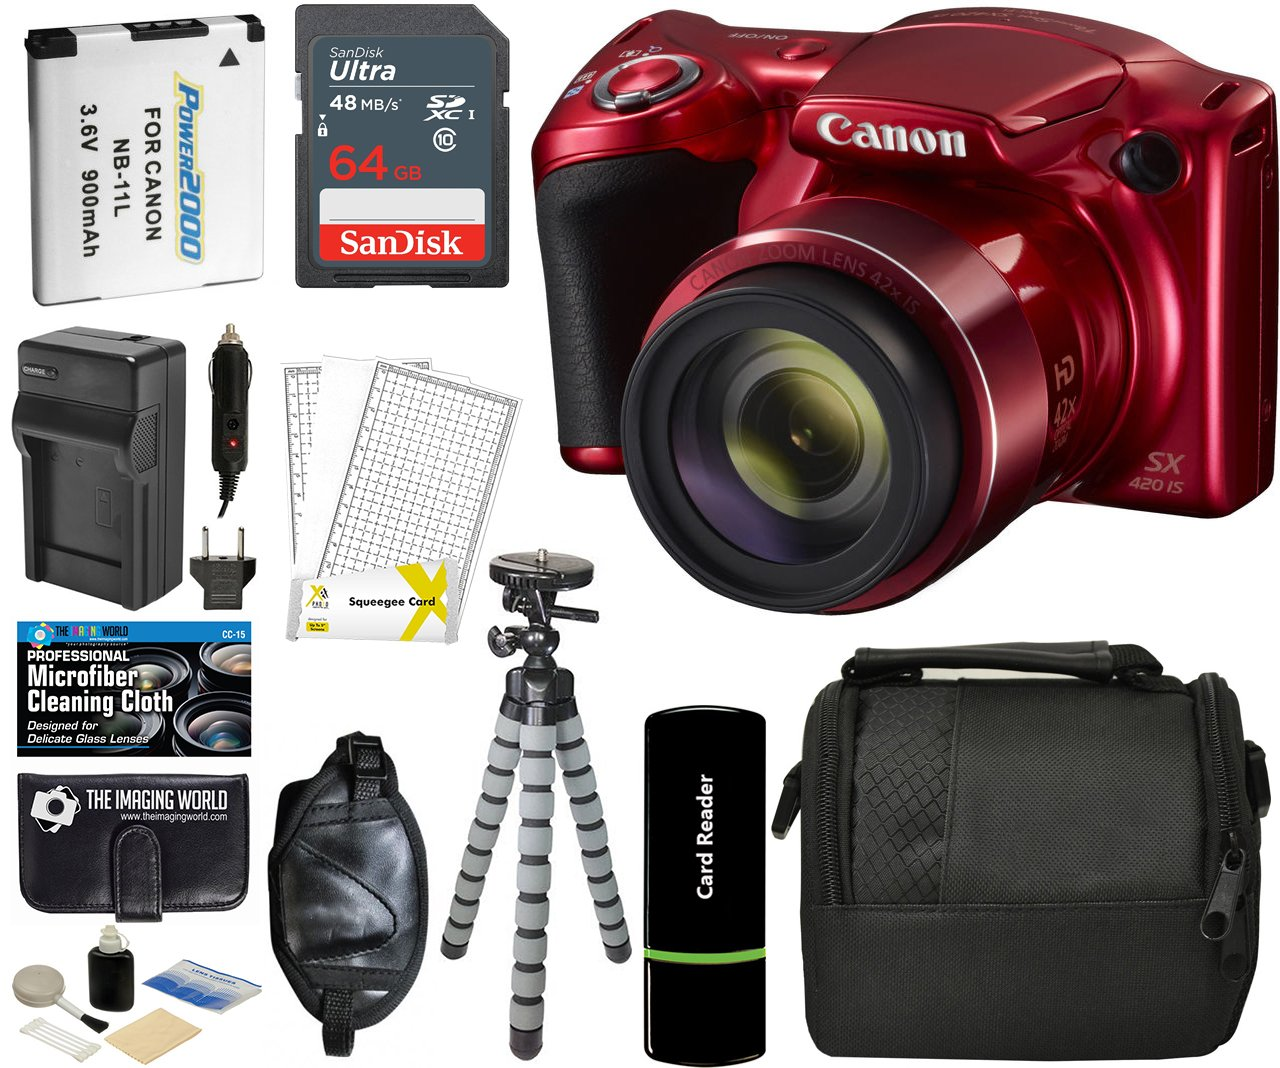 Canon PowerShot SX420 IS Digital Camera (Red) with 20MP, 42x Optical Zoom, 720p HD Video & Built-In Wi-Fi + 64GB Card + Reader + Grip + Spare Battery and Charger + Tripod + Complete Accessory Bundle by The Imaging World